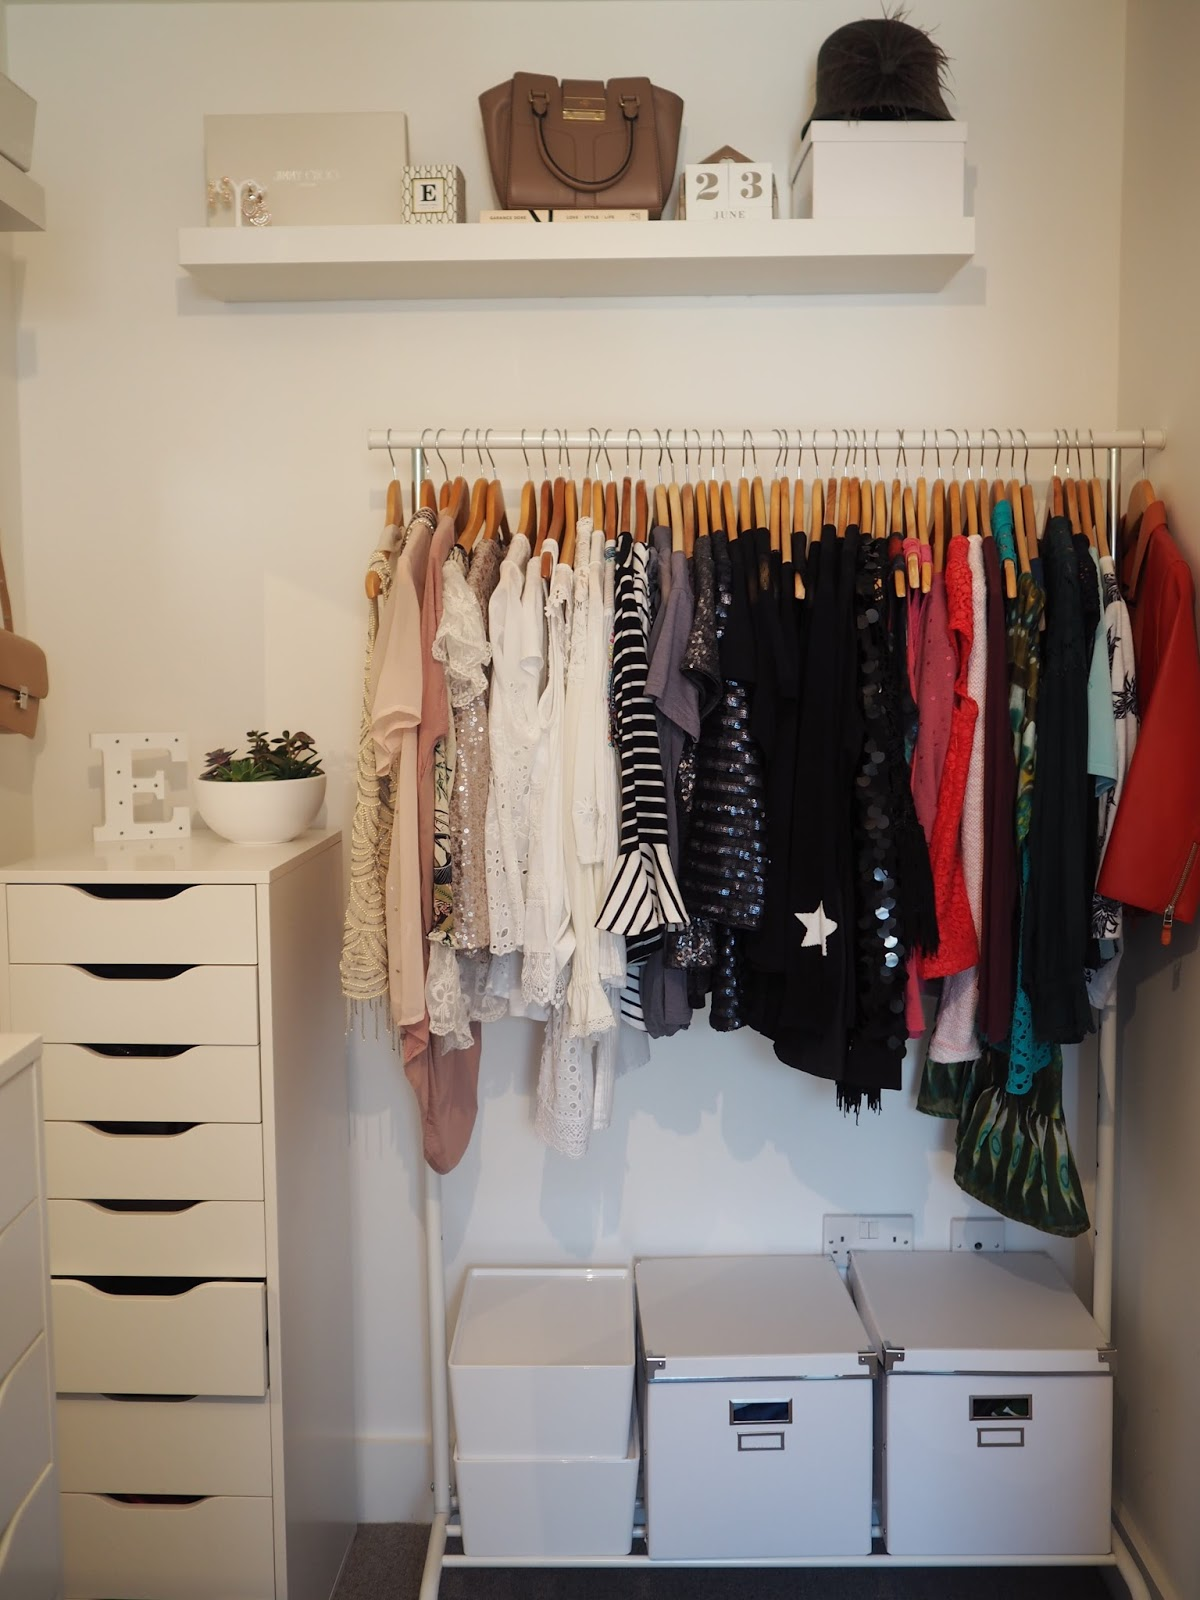 convert spare room to walk in closet Ikea Rigga rail Alex drawers